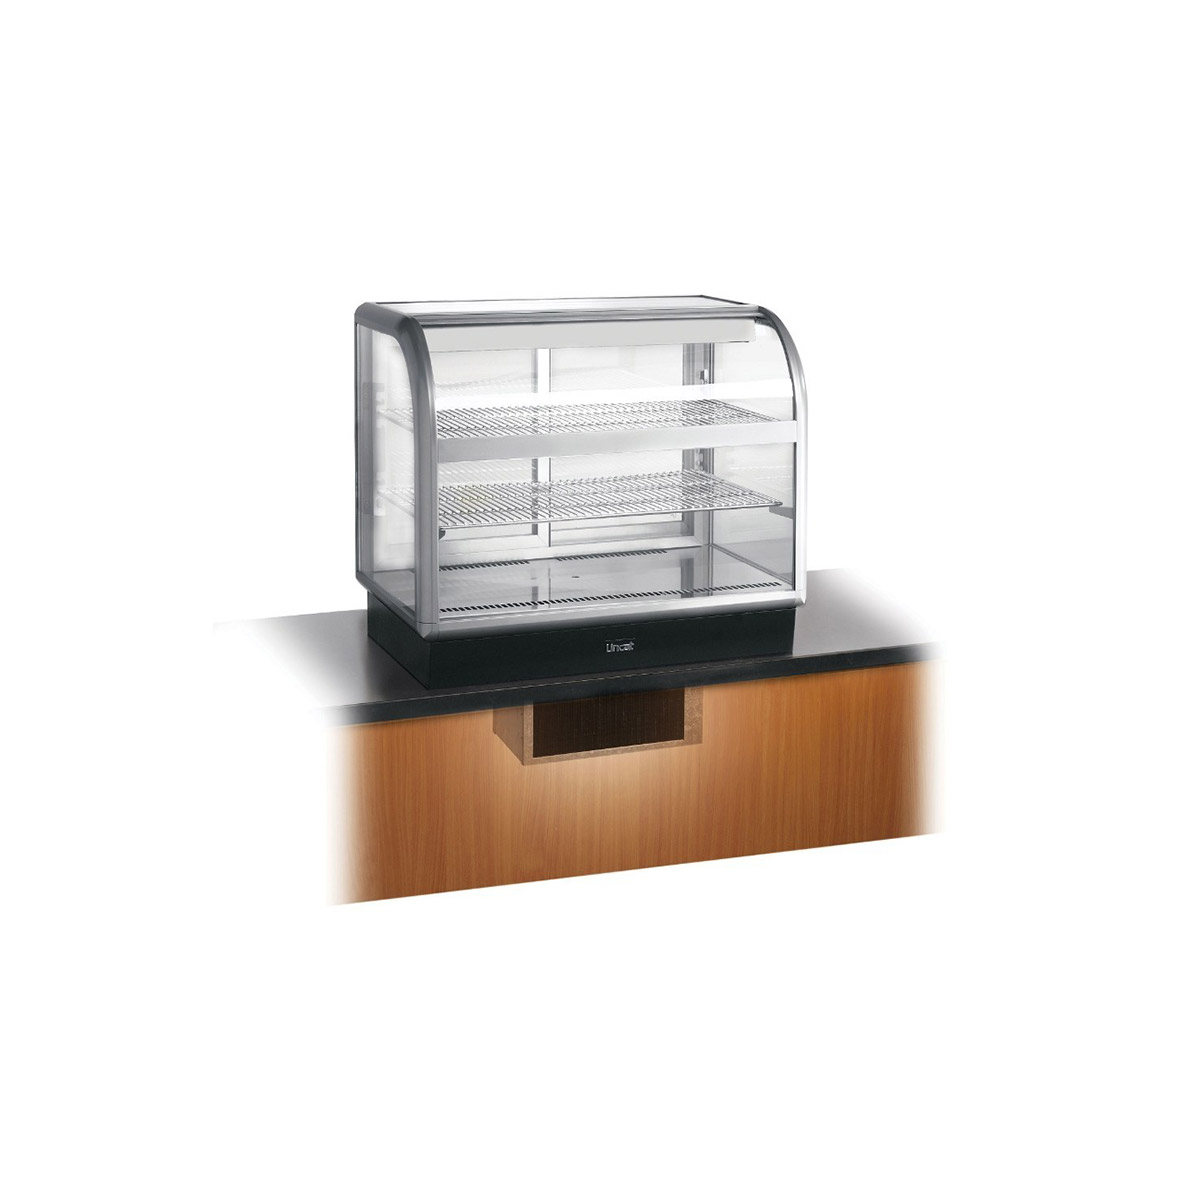 C6R/100BU - Lincat Seal 650 Series Counter-top Curved Front Refrigerated Merchandiser - Back-Service - Under-Counter Power Pack - W 1000 mm - 0.7 kW